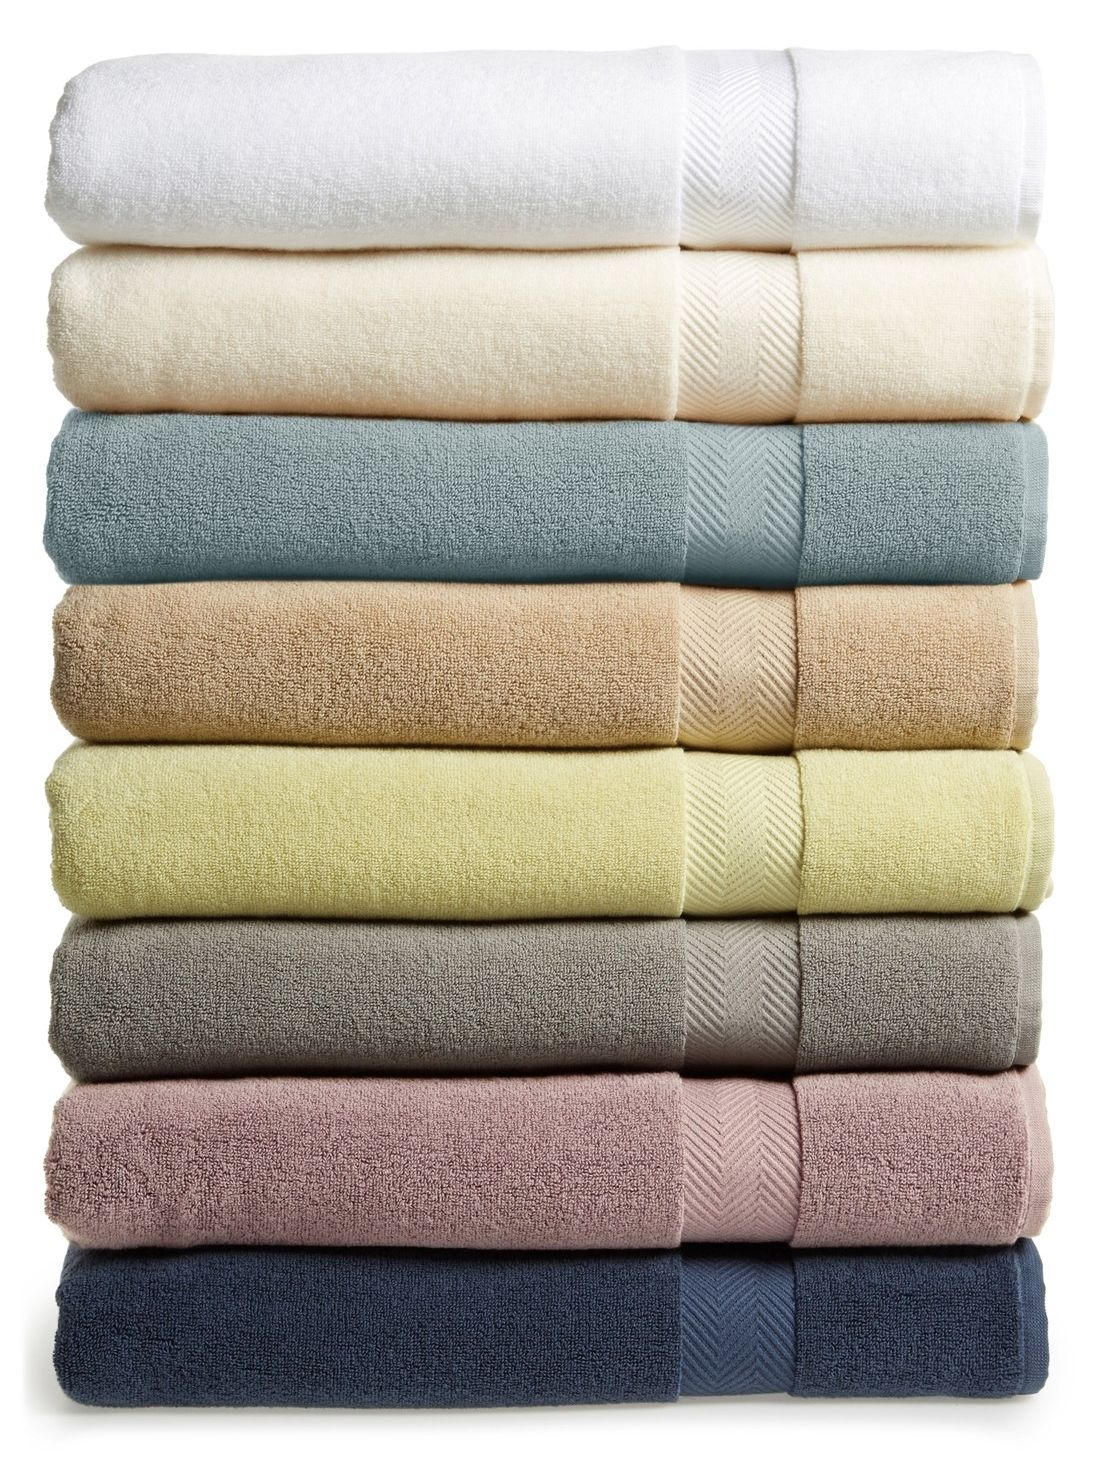 Hydrocotton Bath Towels Gorgeous Hydrocotton Bath Towel  Cotton Towels Towels And Tiny Bathrooms Design Ideas